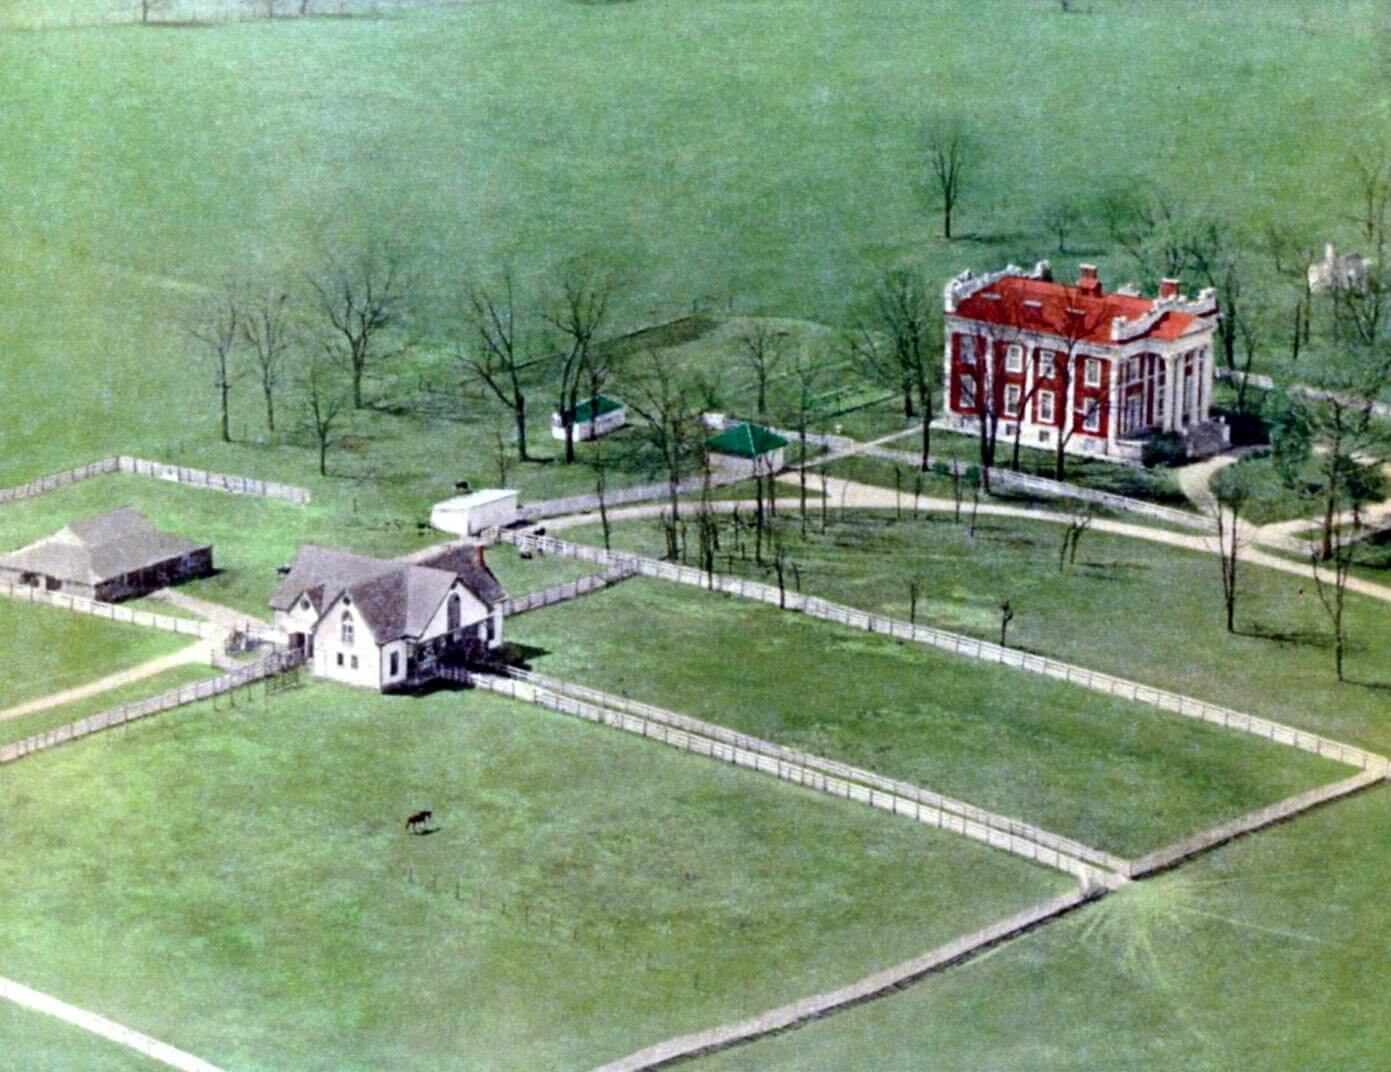 Ward Hall aerial view